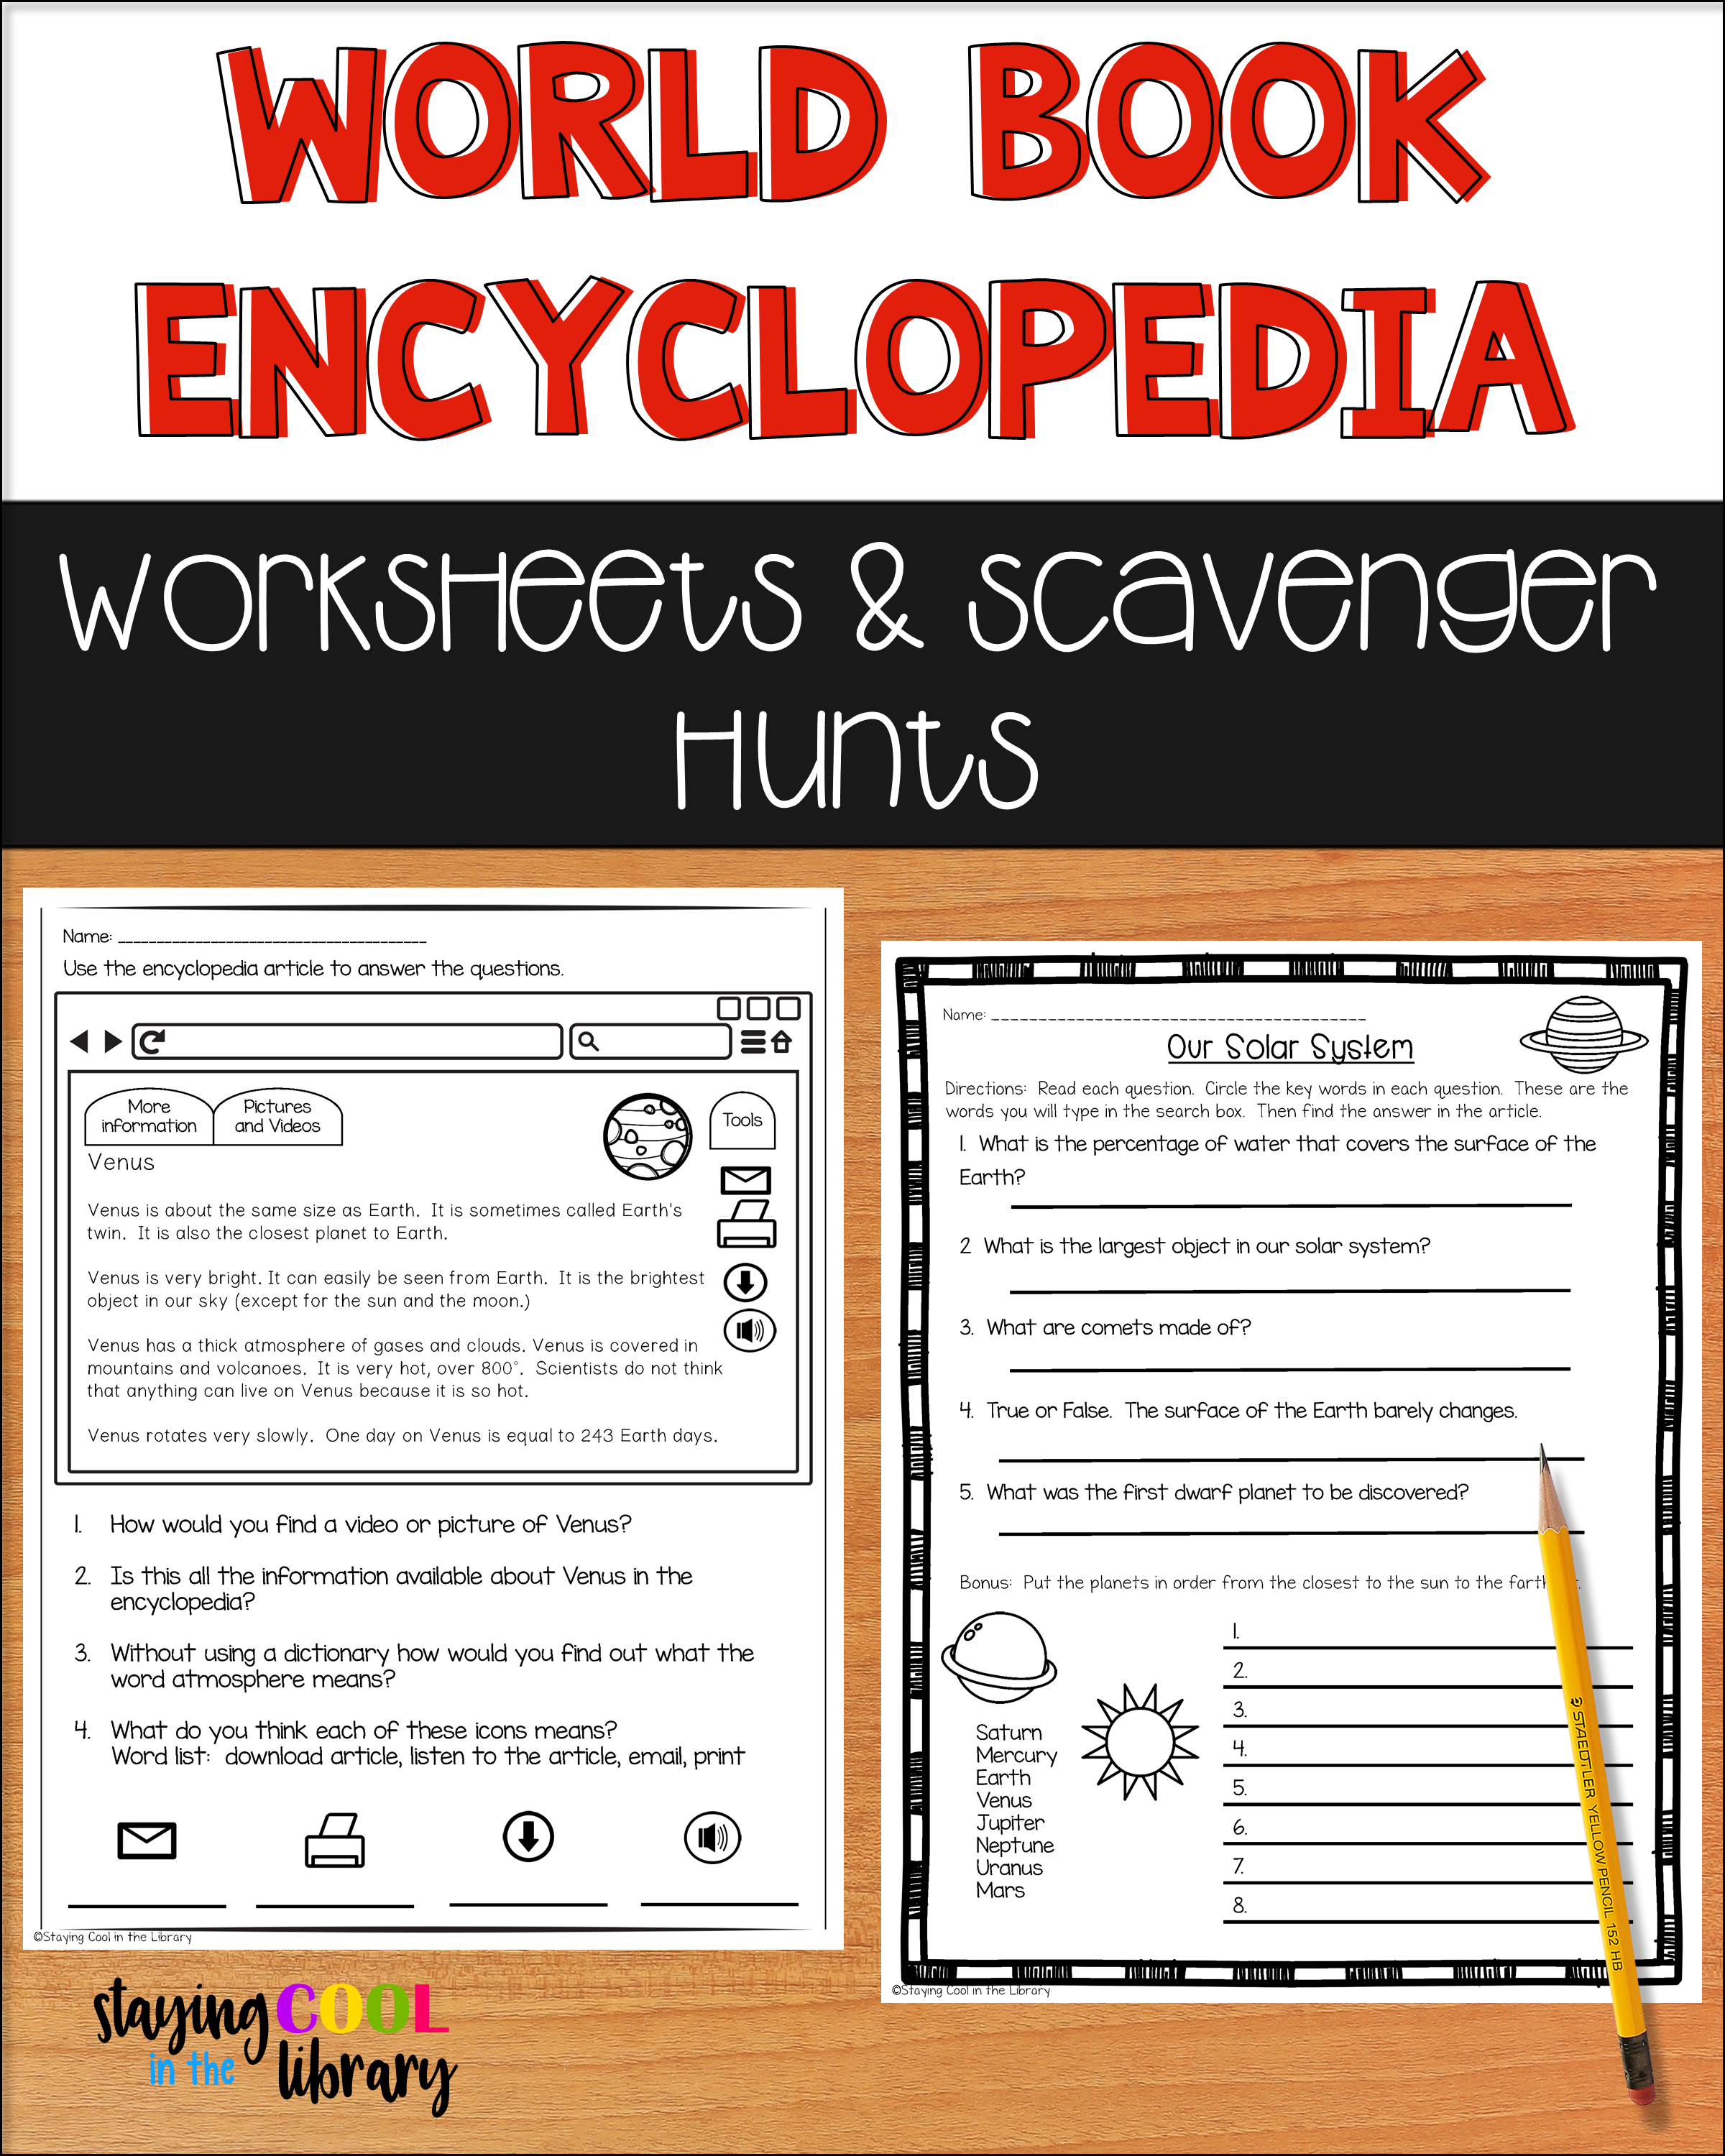 Online Encyclopedia Worksheets And Scavenger Hunts